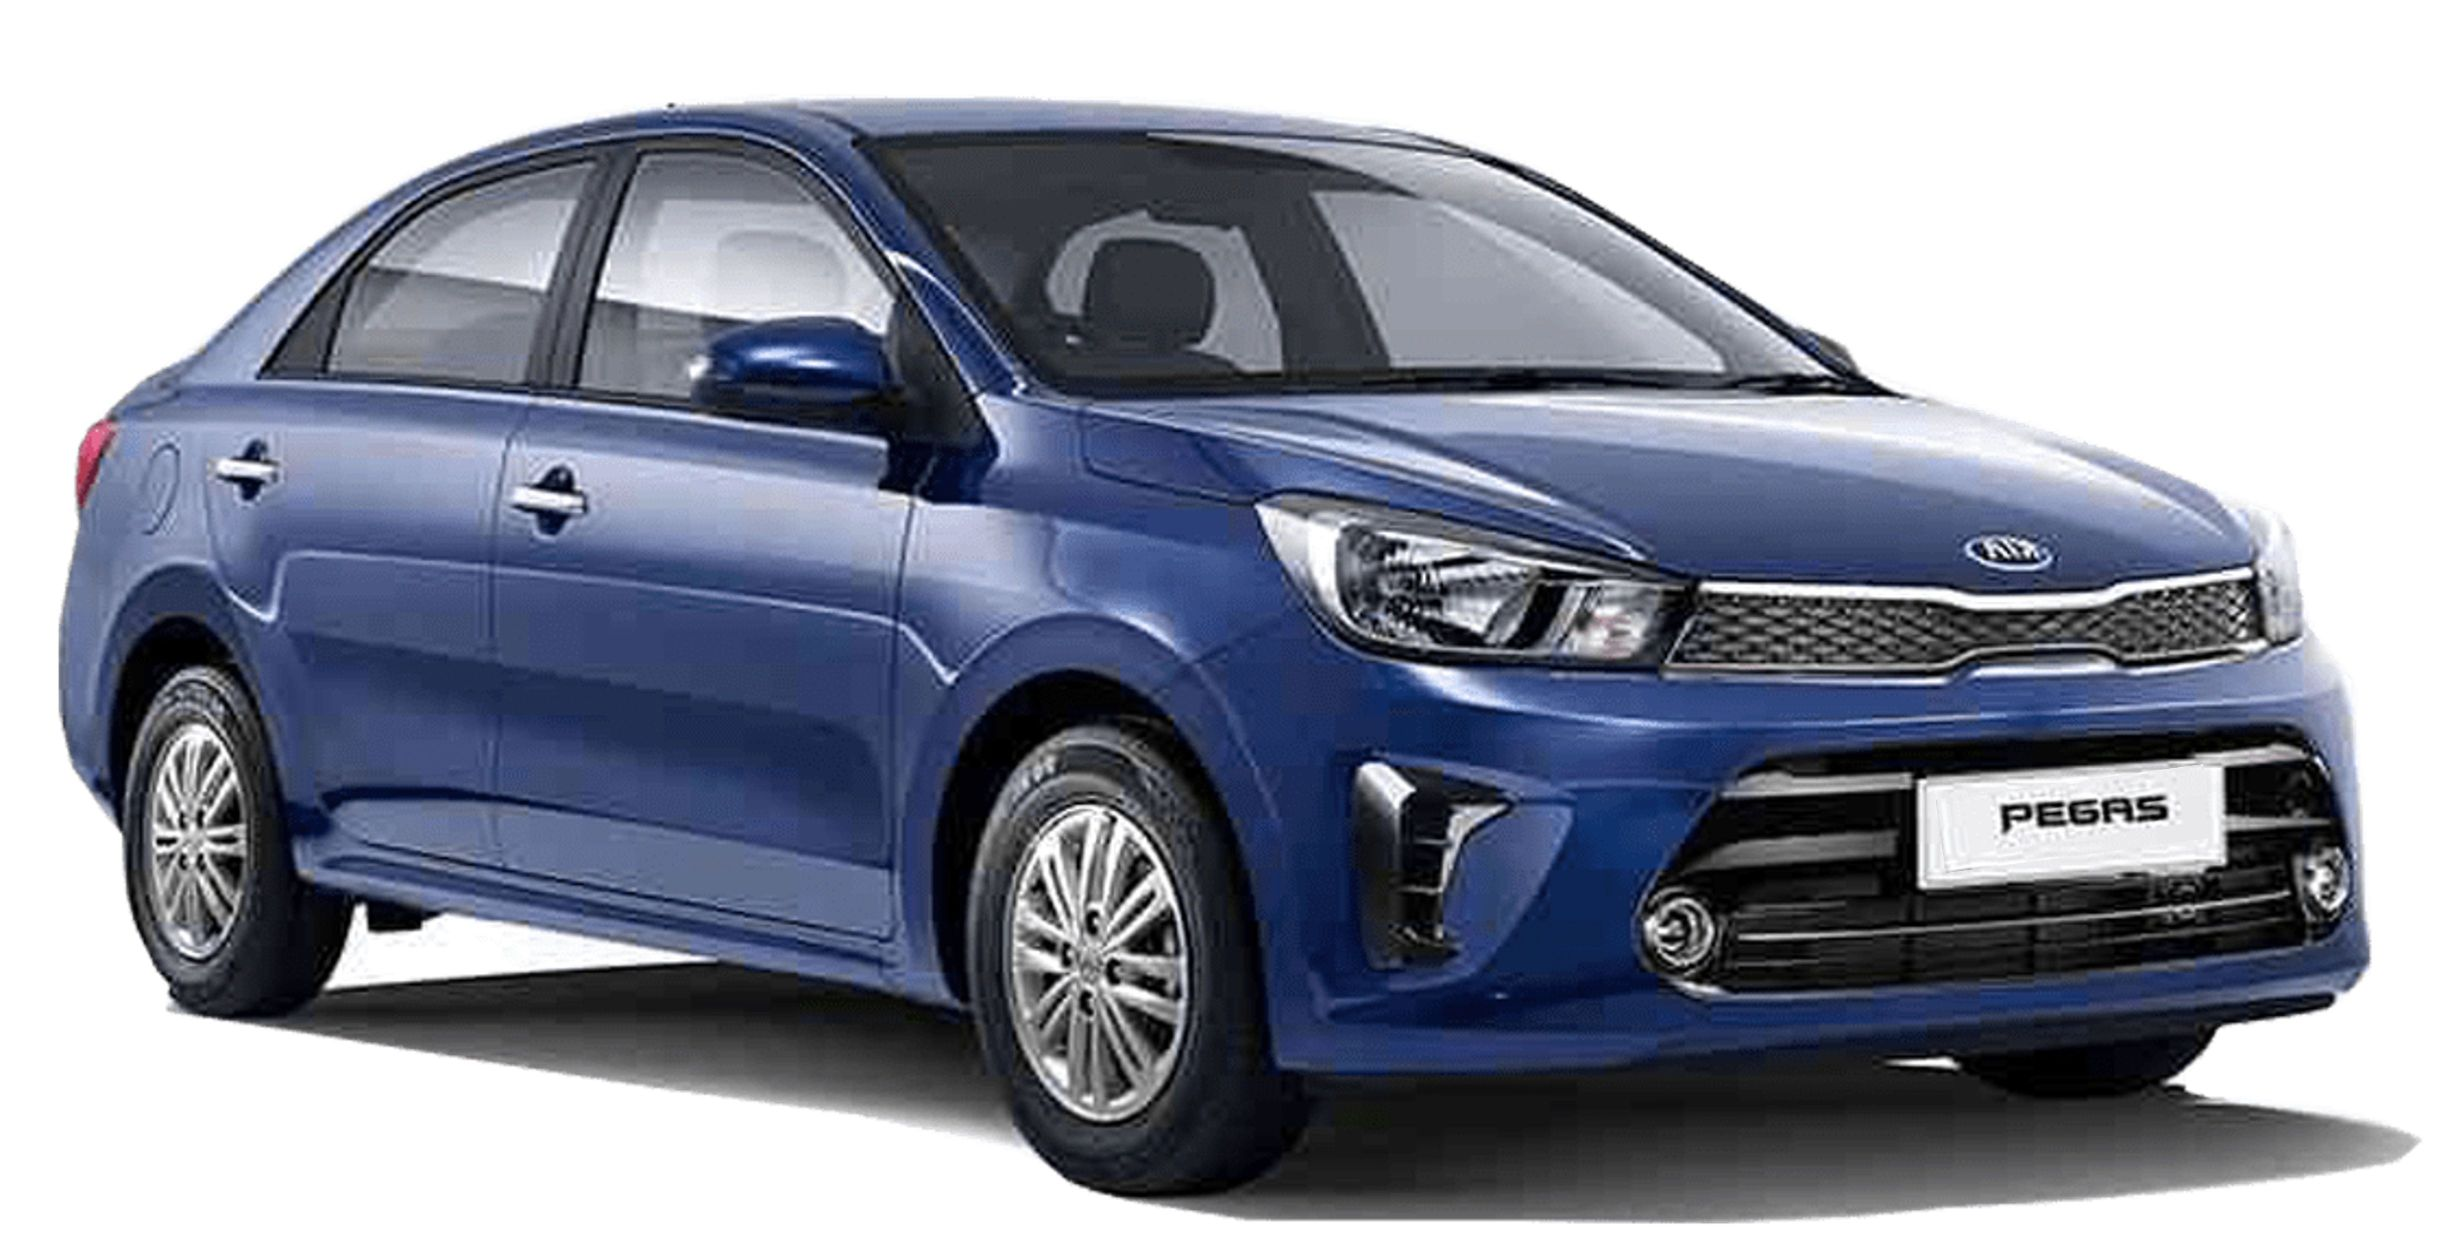 Kia Pegas 1.4 M/T from only R3 299pm banner